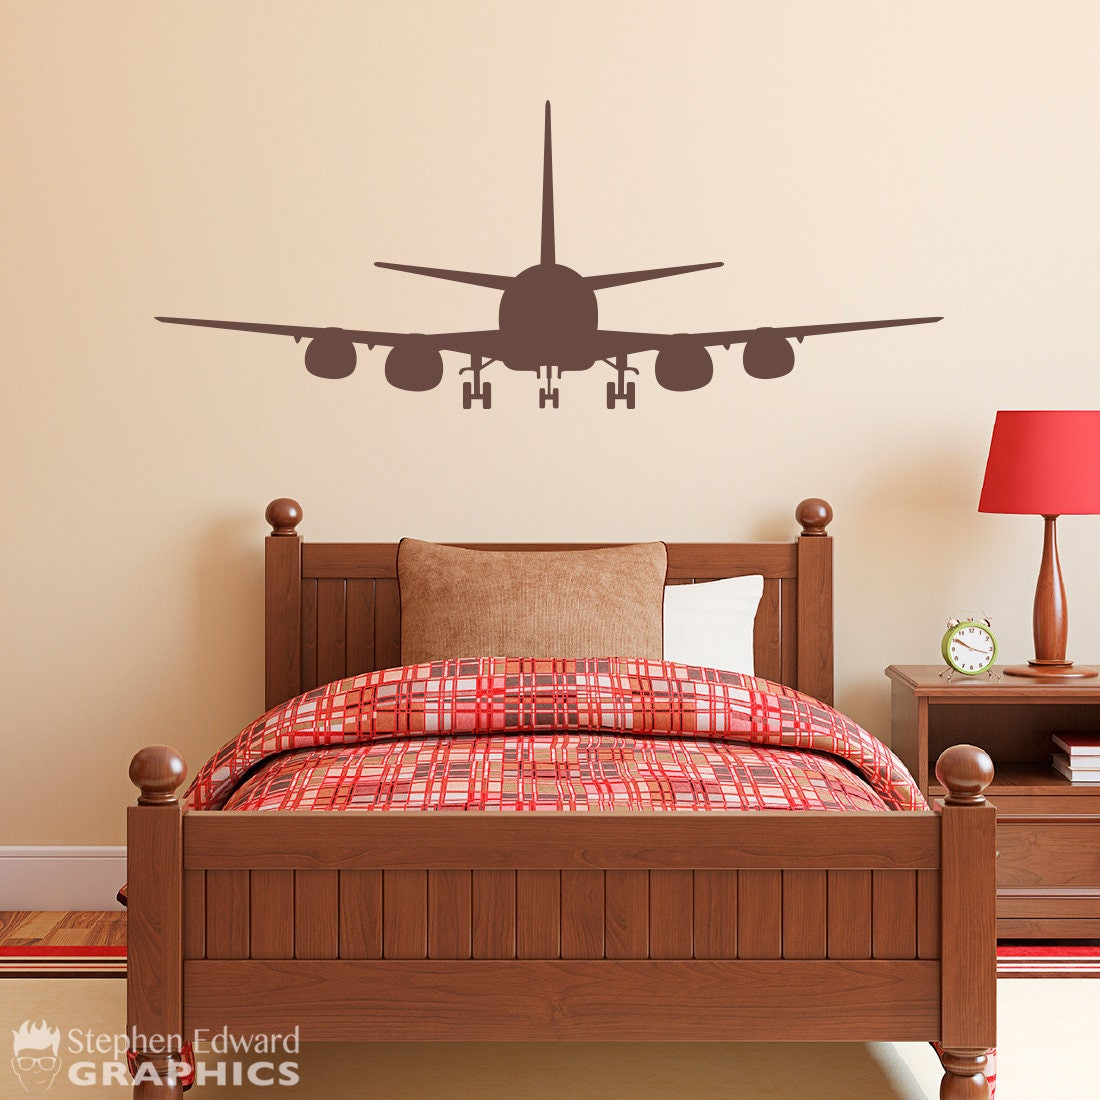 Airplane Boy Bedroom Decal - Plane Wall Decor - Airplane Sticker